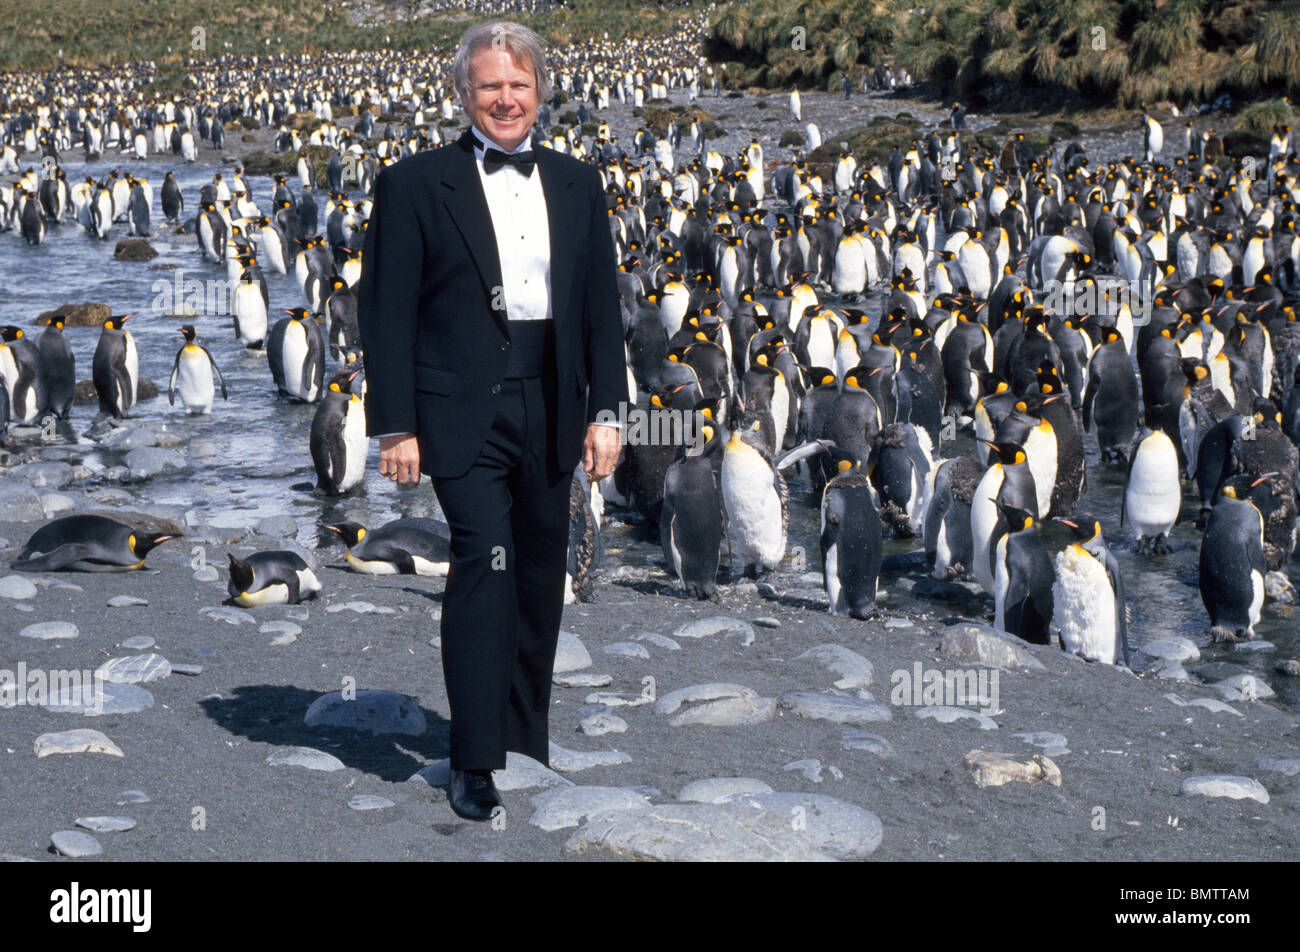 A visitor to Antarctica dresses appropriately in a tuxedo to visit the King Penguins at Gold Harbor on South Georgia - Stock Image